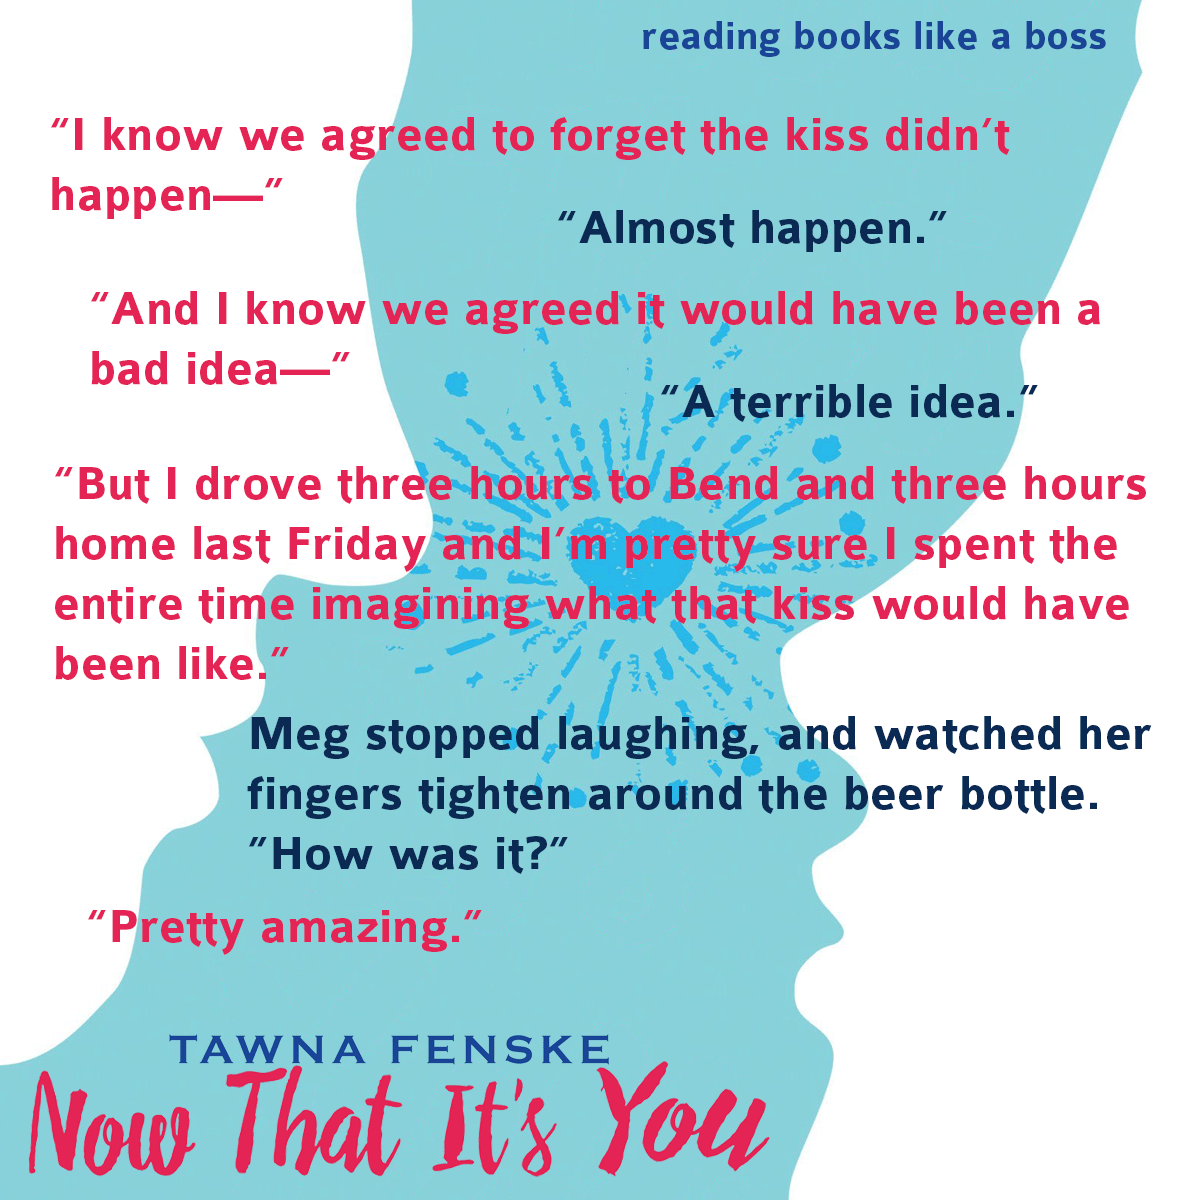 Teaser: Now That It's You by Tawna Fenske